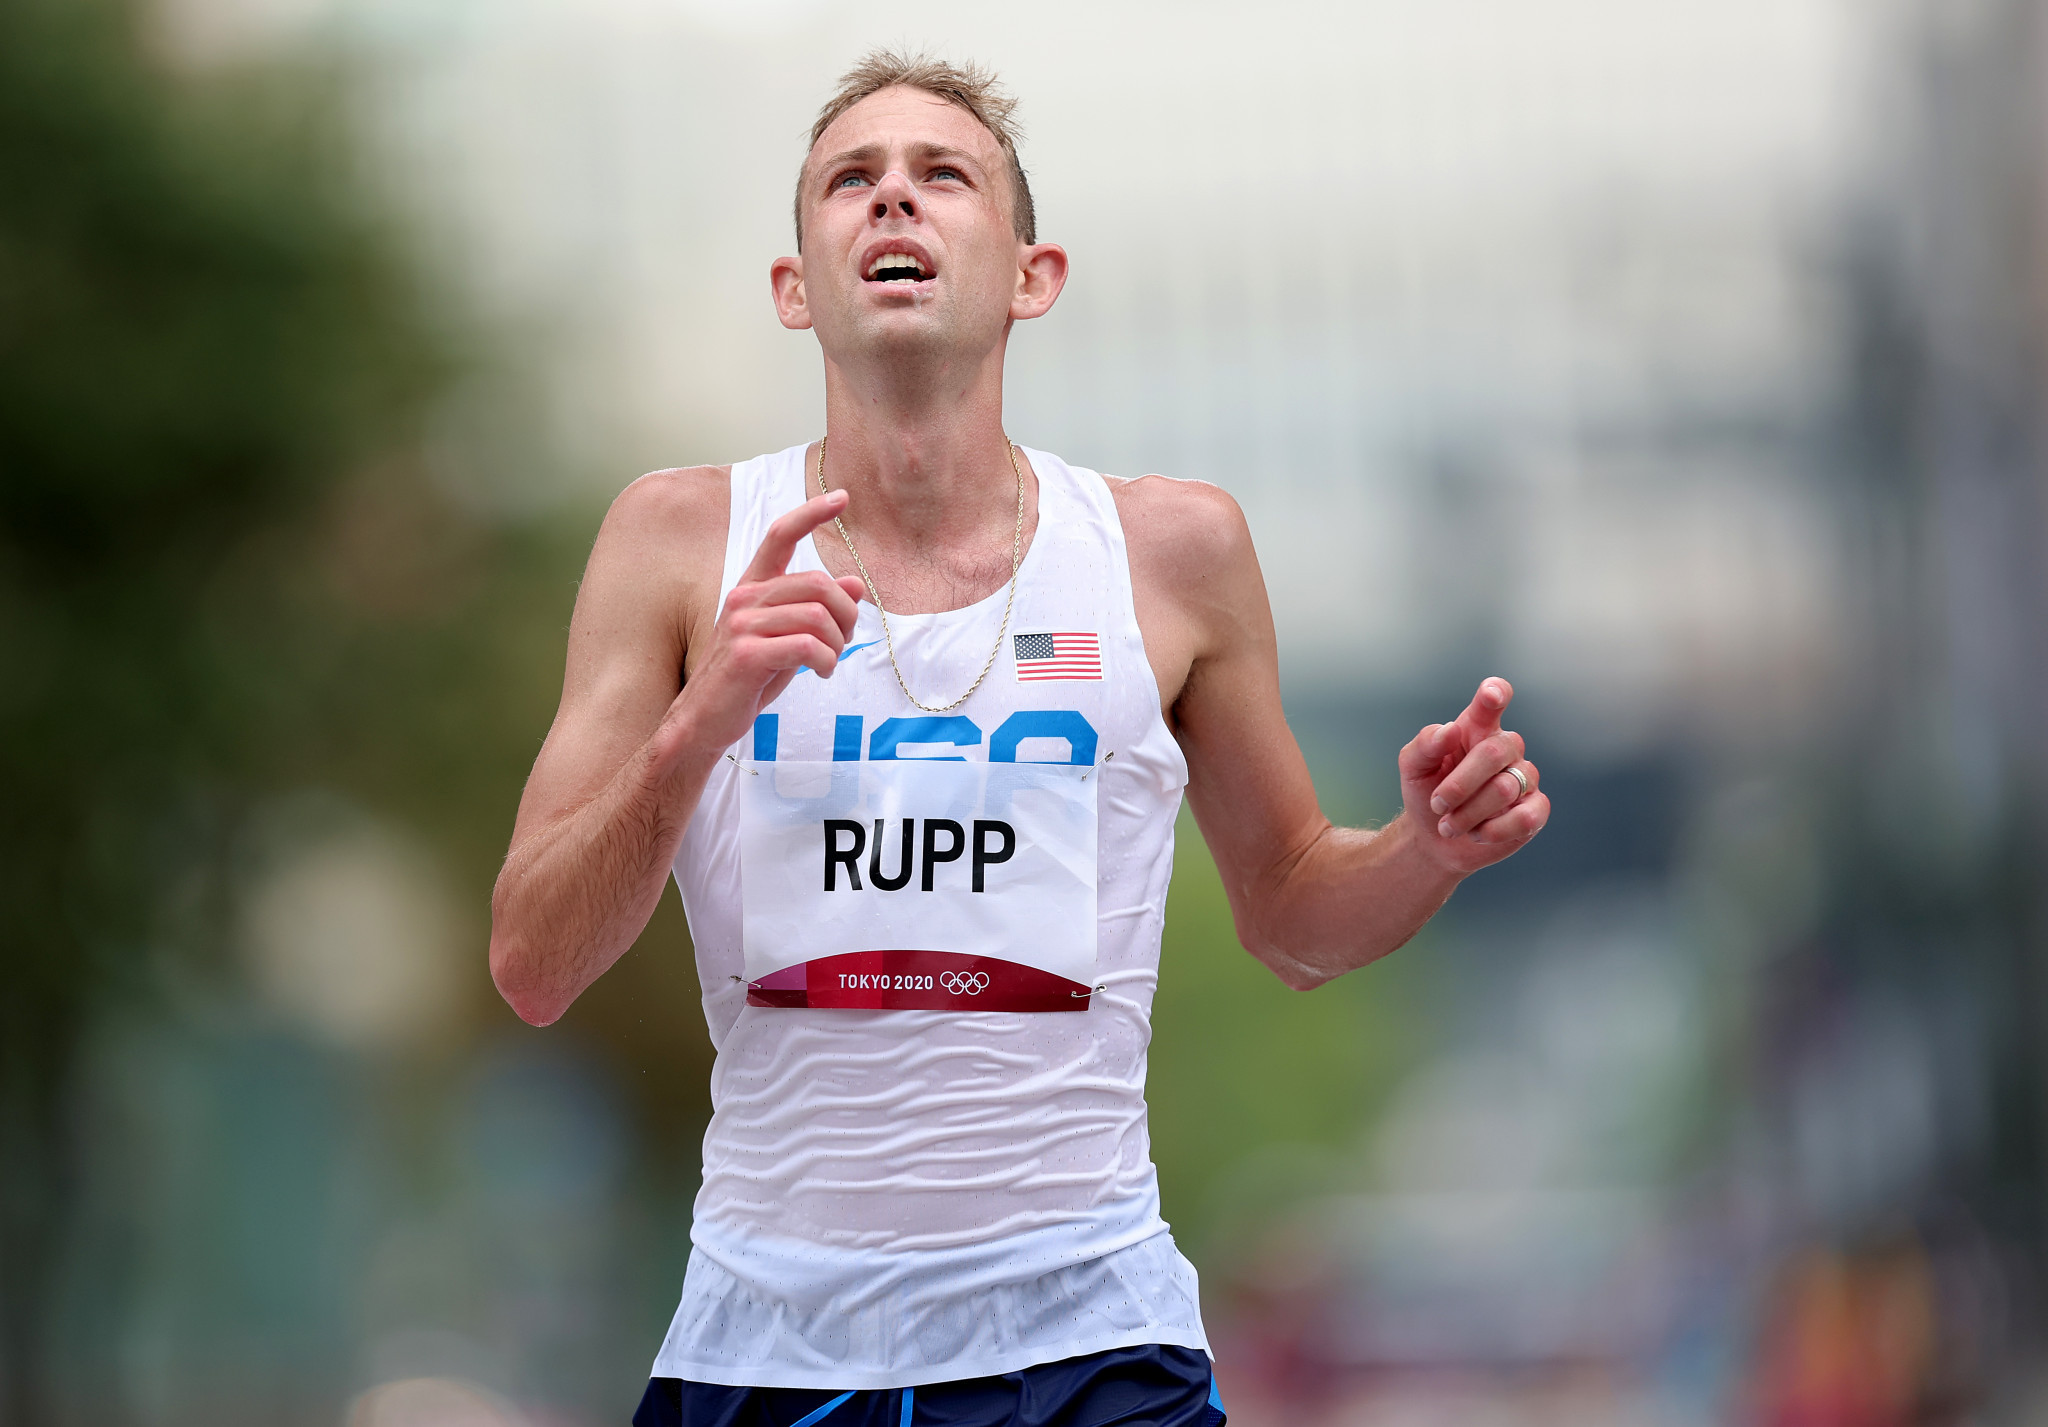 Rupp and Hall lead American hopes at Chicago Marathon as both gun for national records